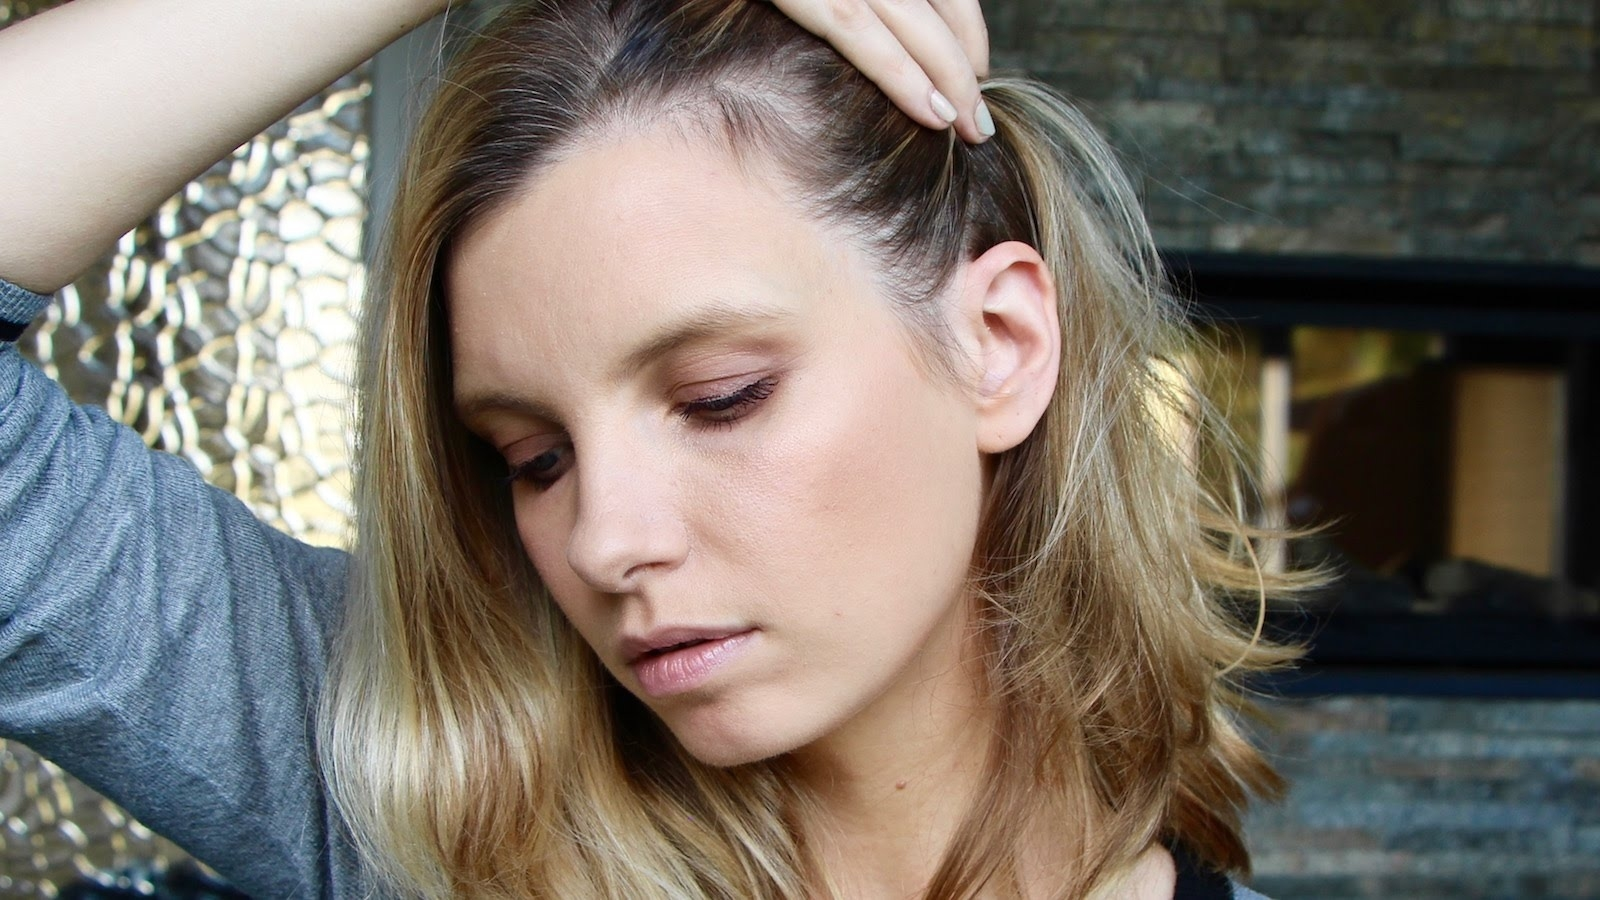 My Post-Pregnancy Hair Loss   A Model Recommends - Youtube for Haircut For Thin Hair After Pregnancy